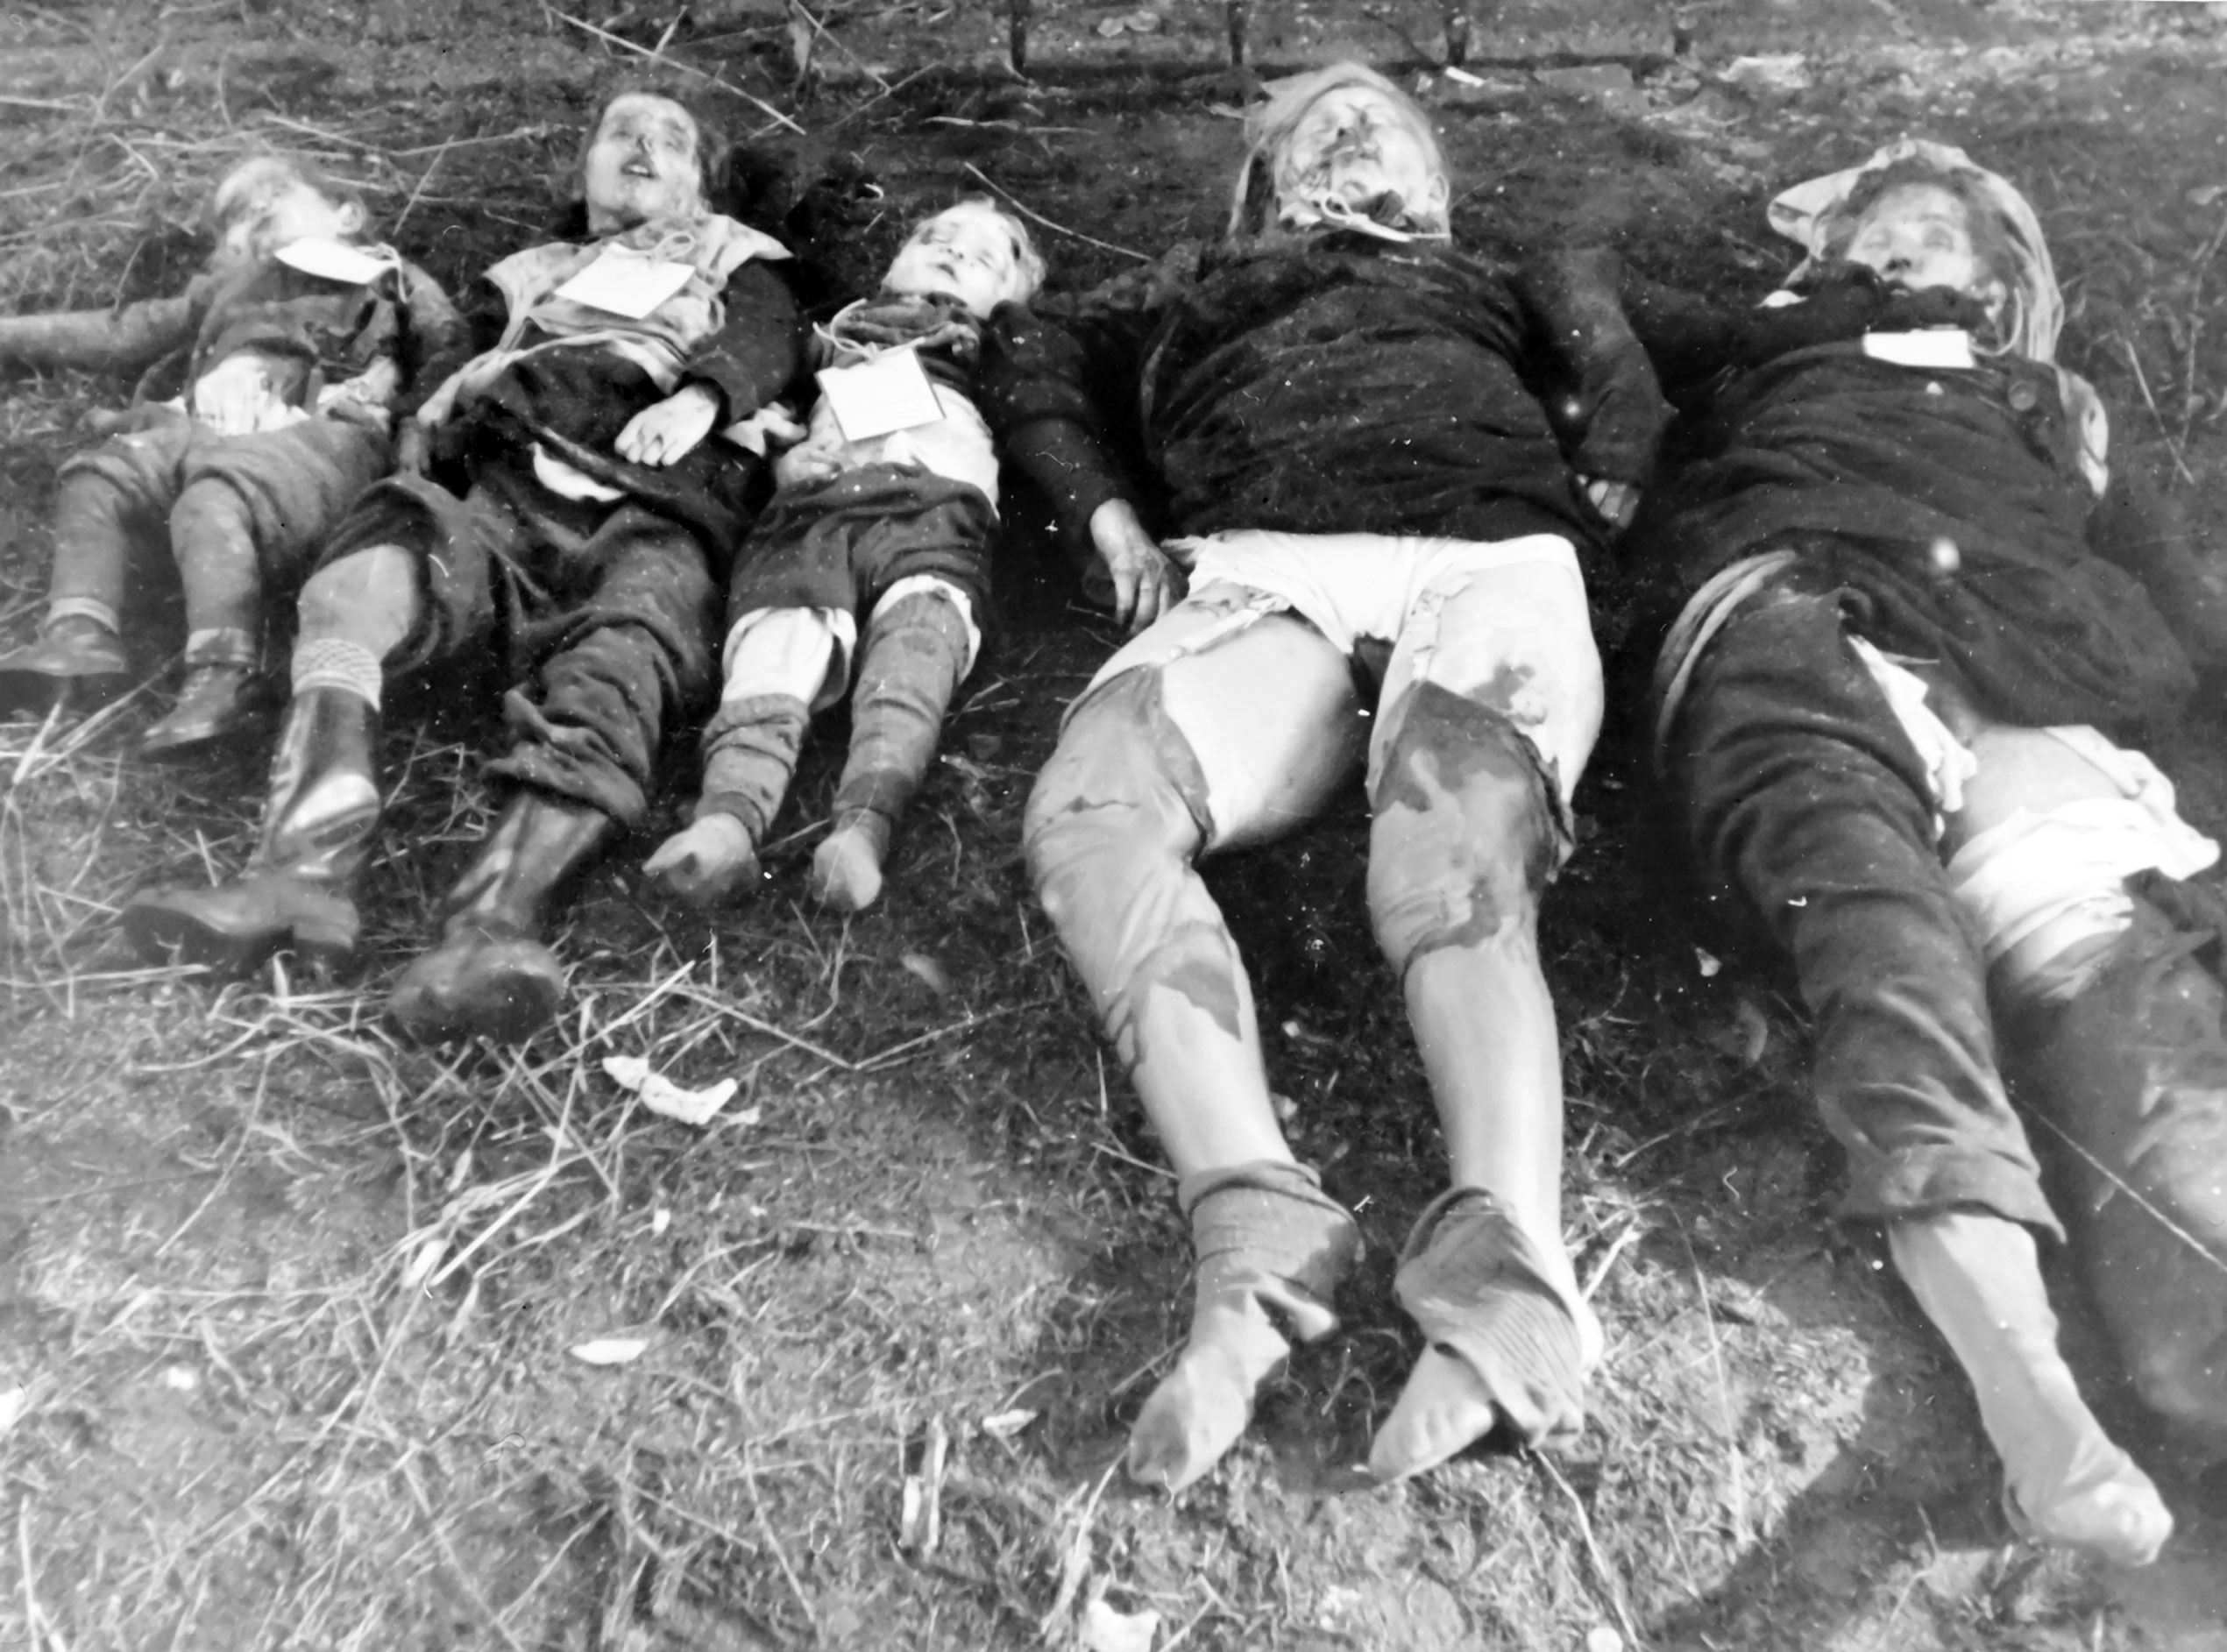 File:Germans killed by Soviet army.jpg - Wikipedia, the free ...